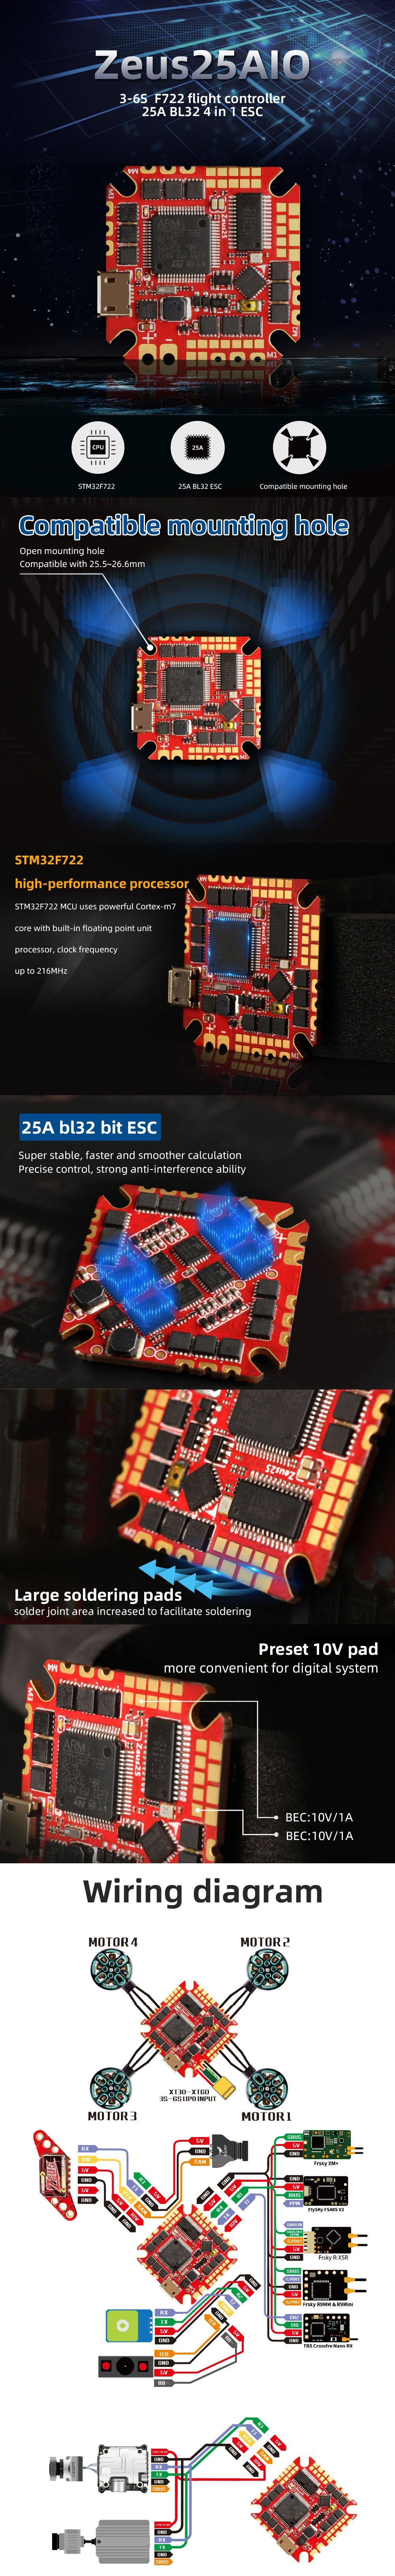 HGLRC Zeus25 AIO - F722 FC and 25A BL32 ESC Features and Wiring Diagram